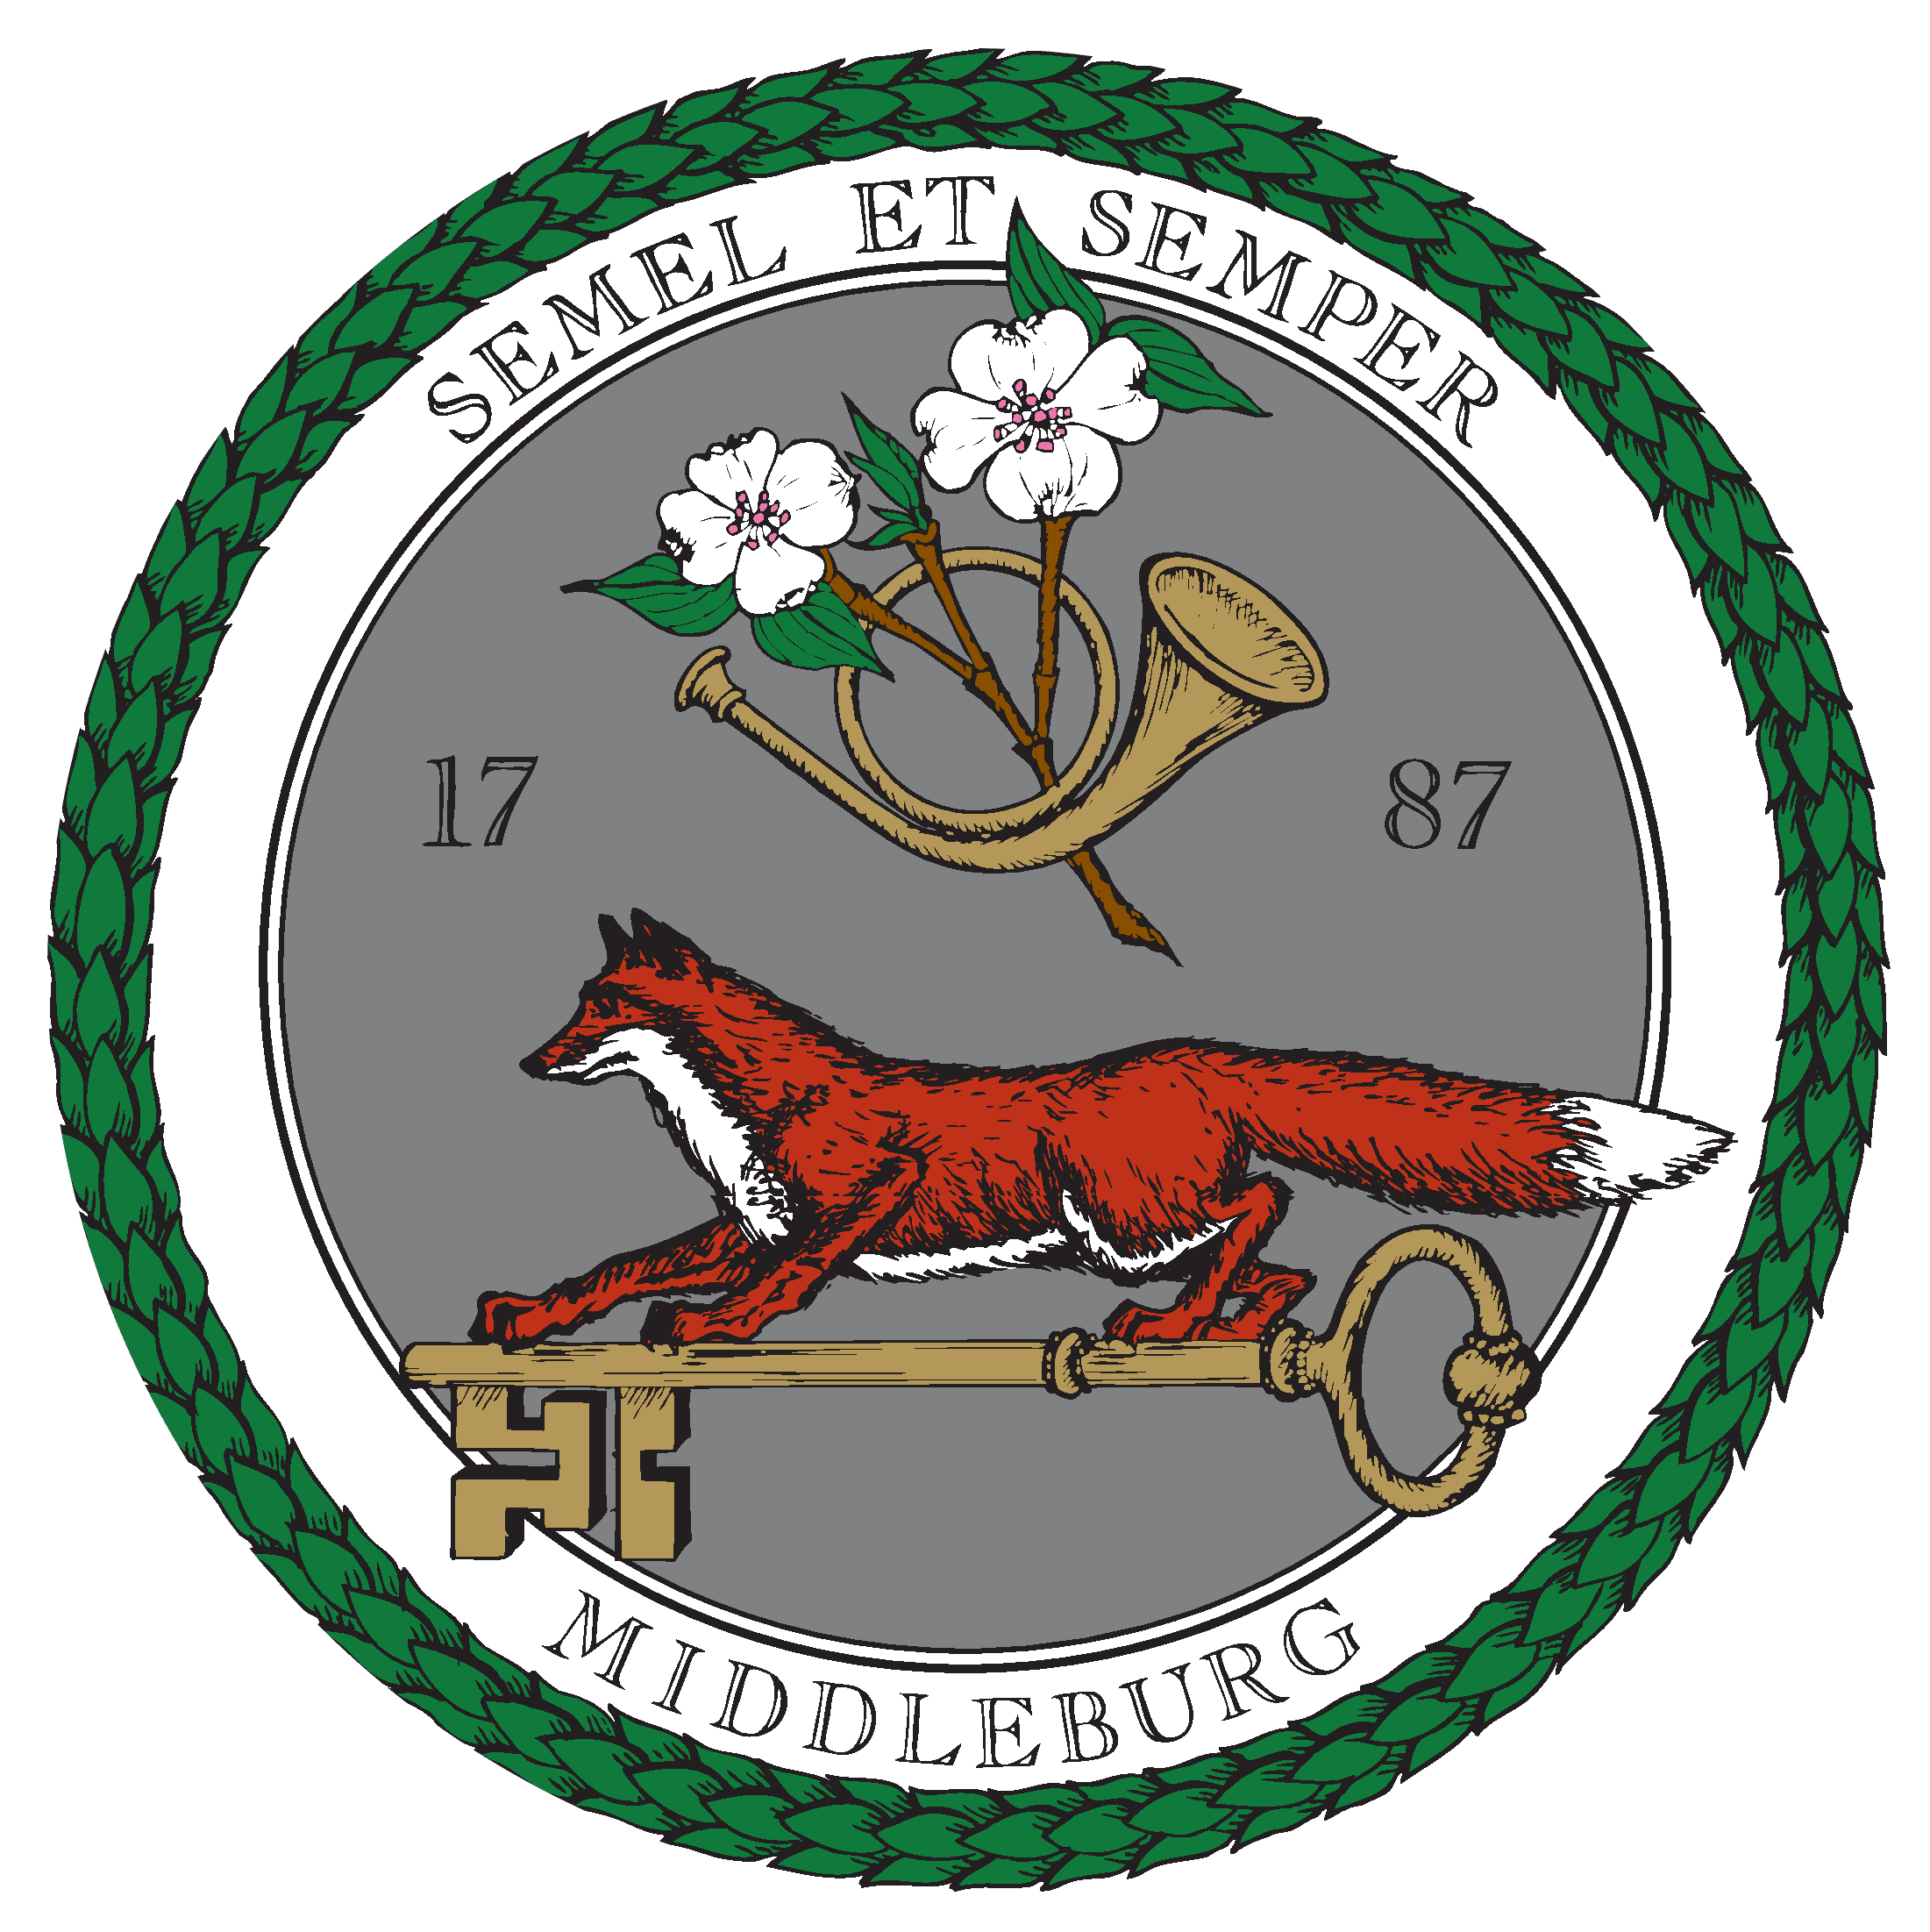 Town of Middleburg Seal CIRCLE